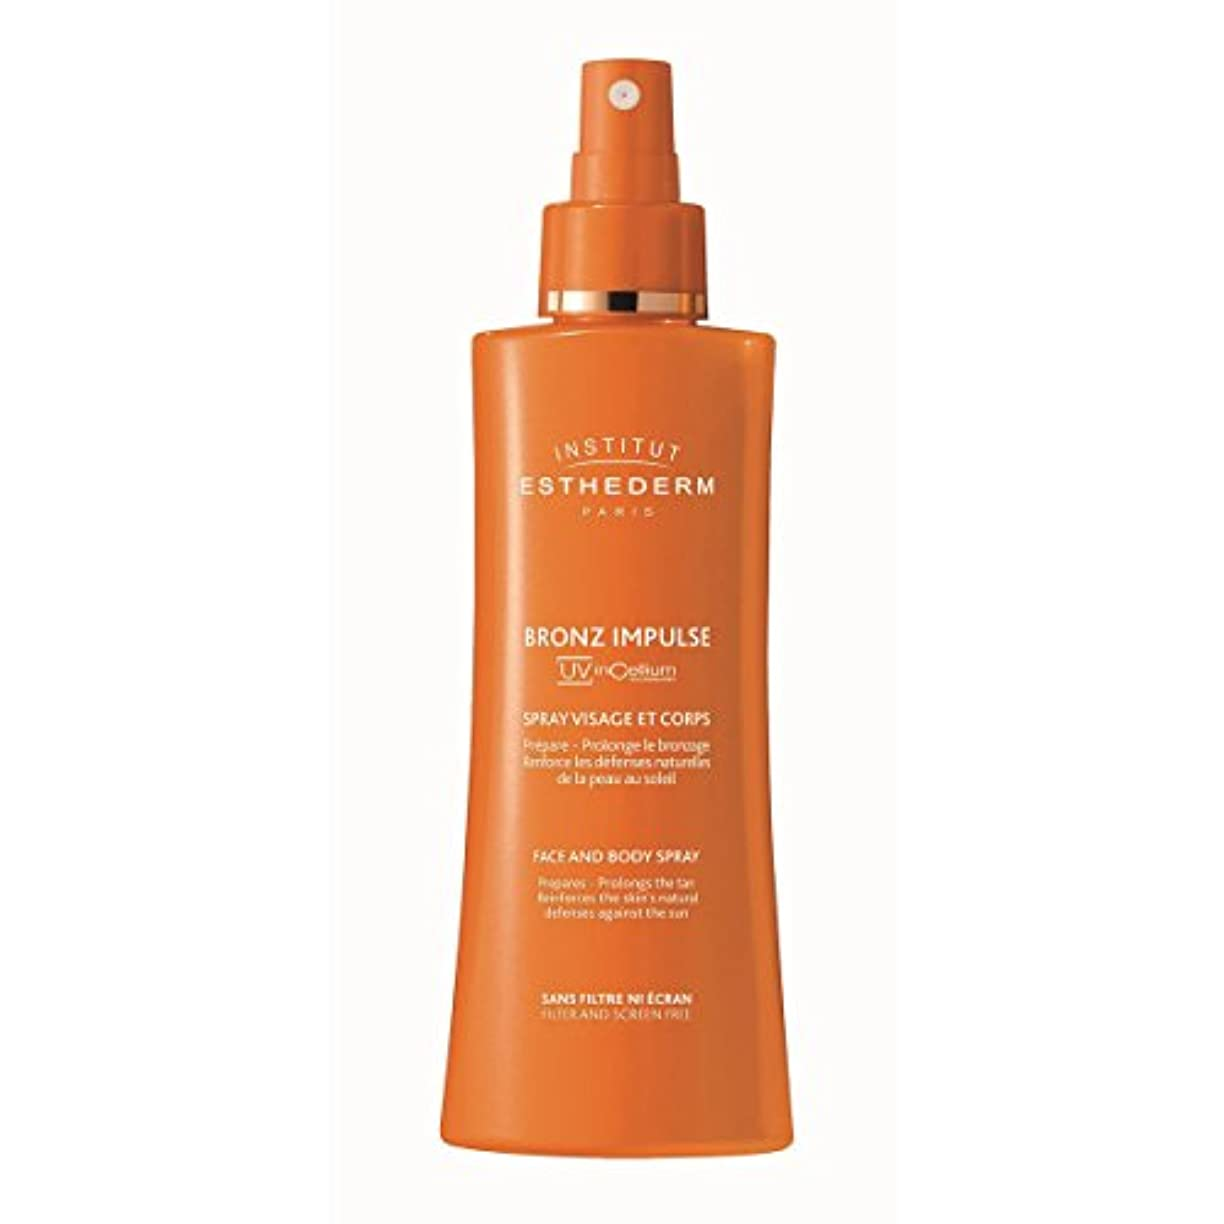 闇隔離する閉じ込めるInstitut Esthederm Bronz Impulse Face And Body Spray 150ml [並行輸入品]